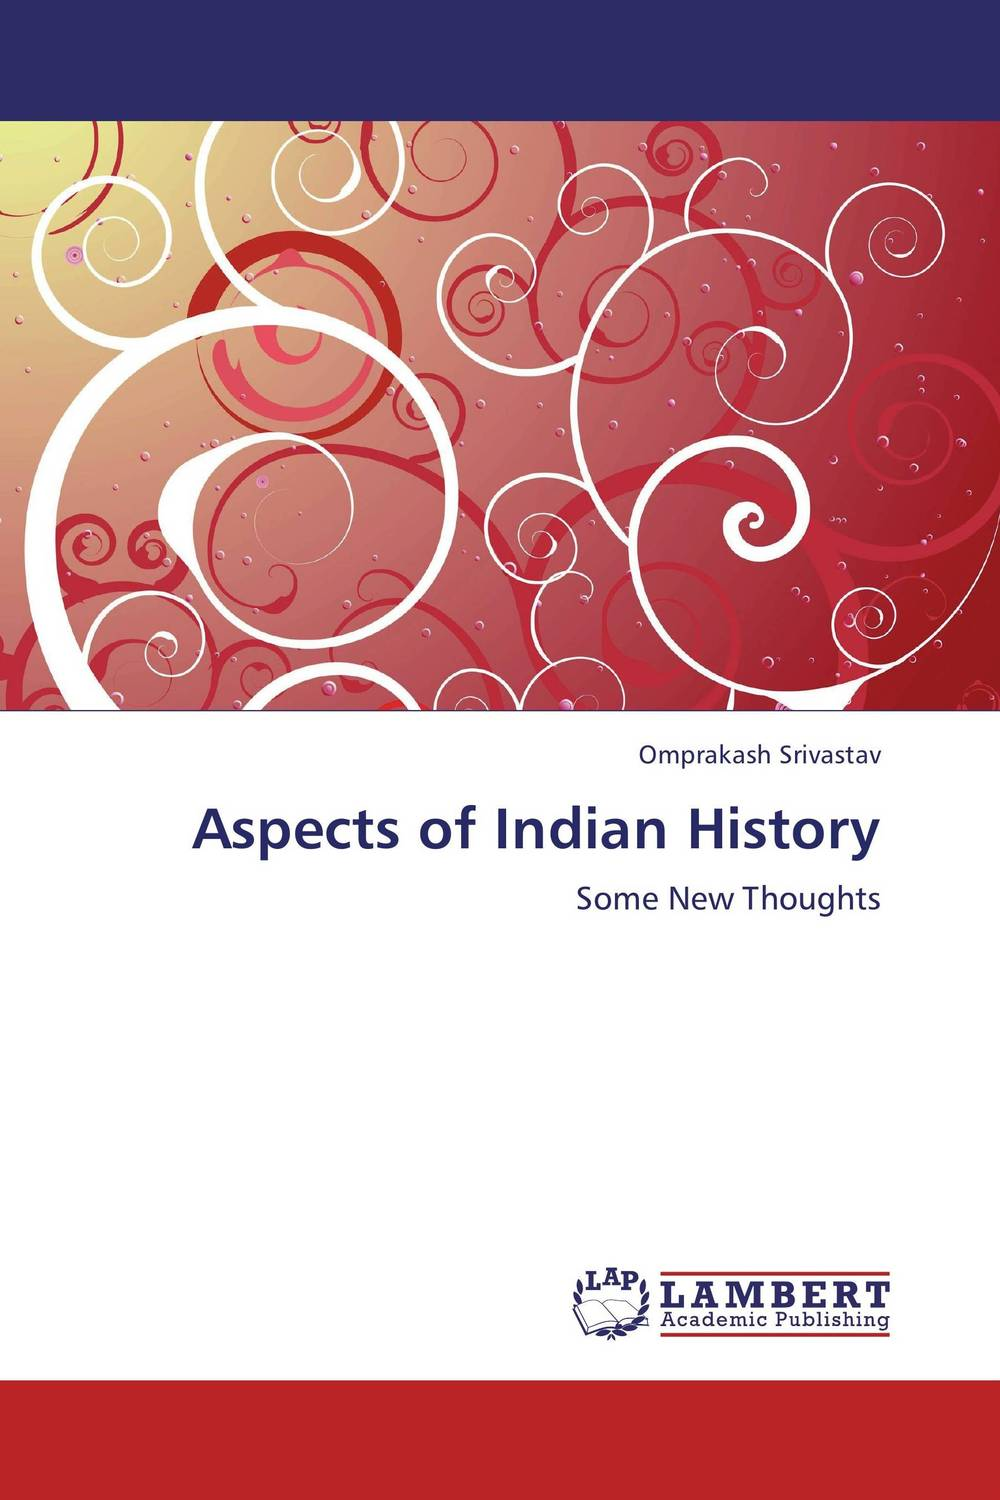 Aspects of Indian History